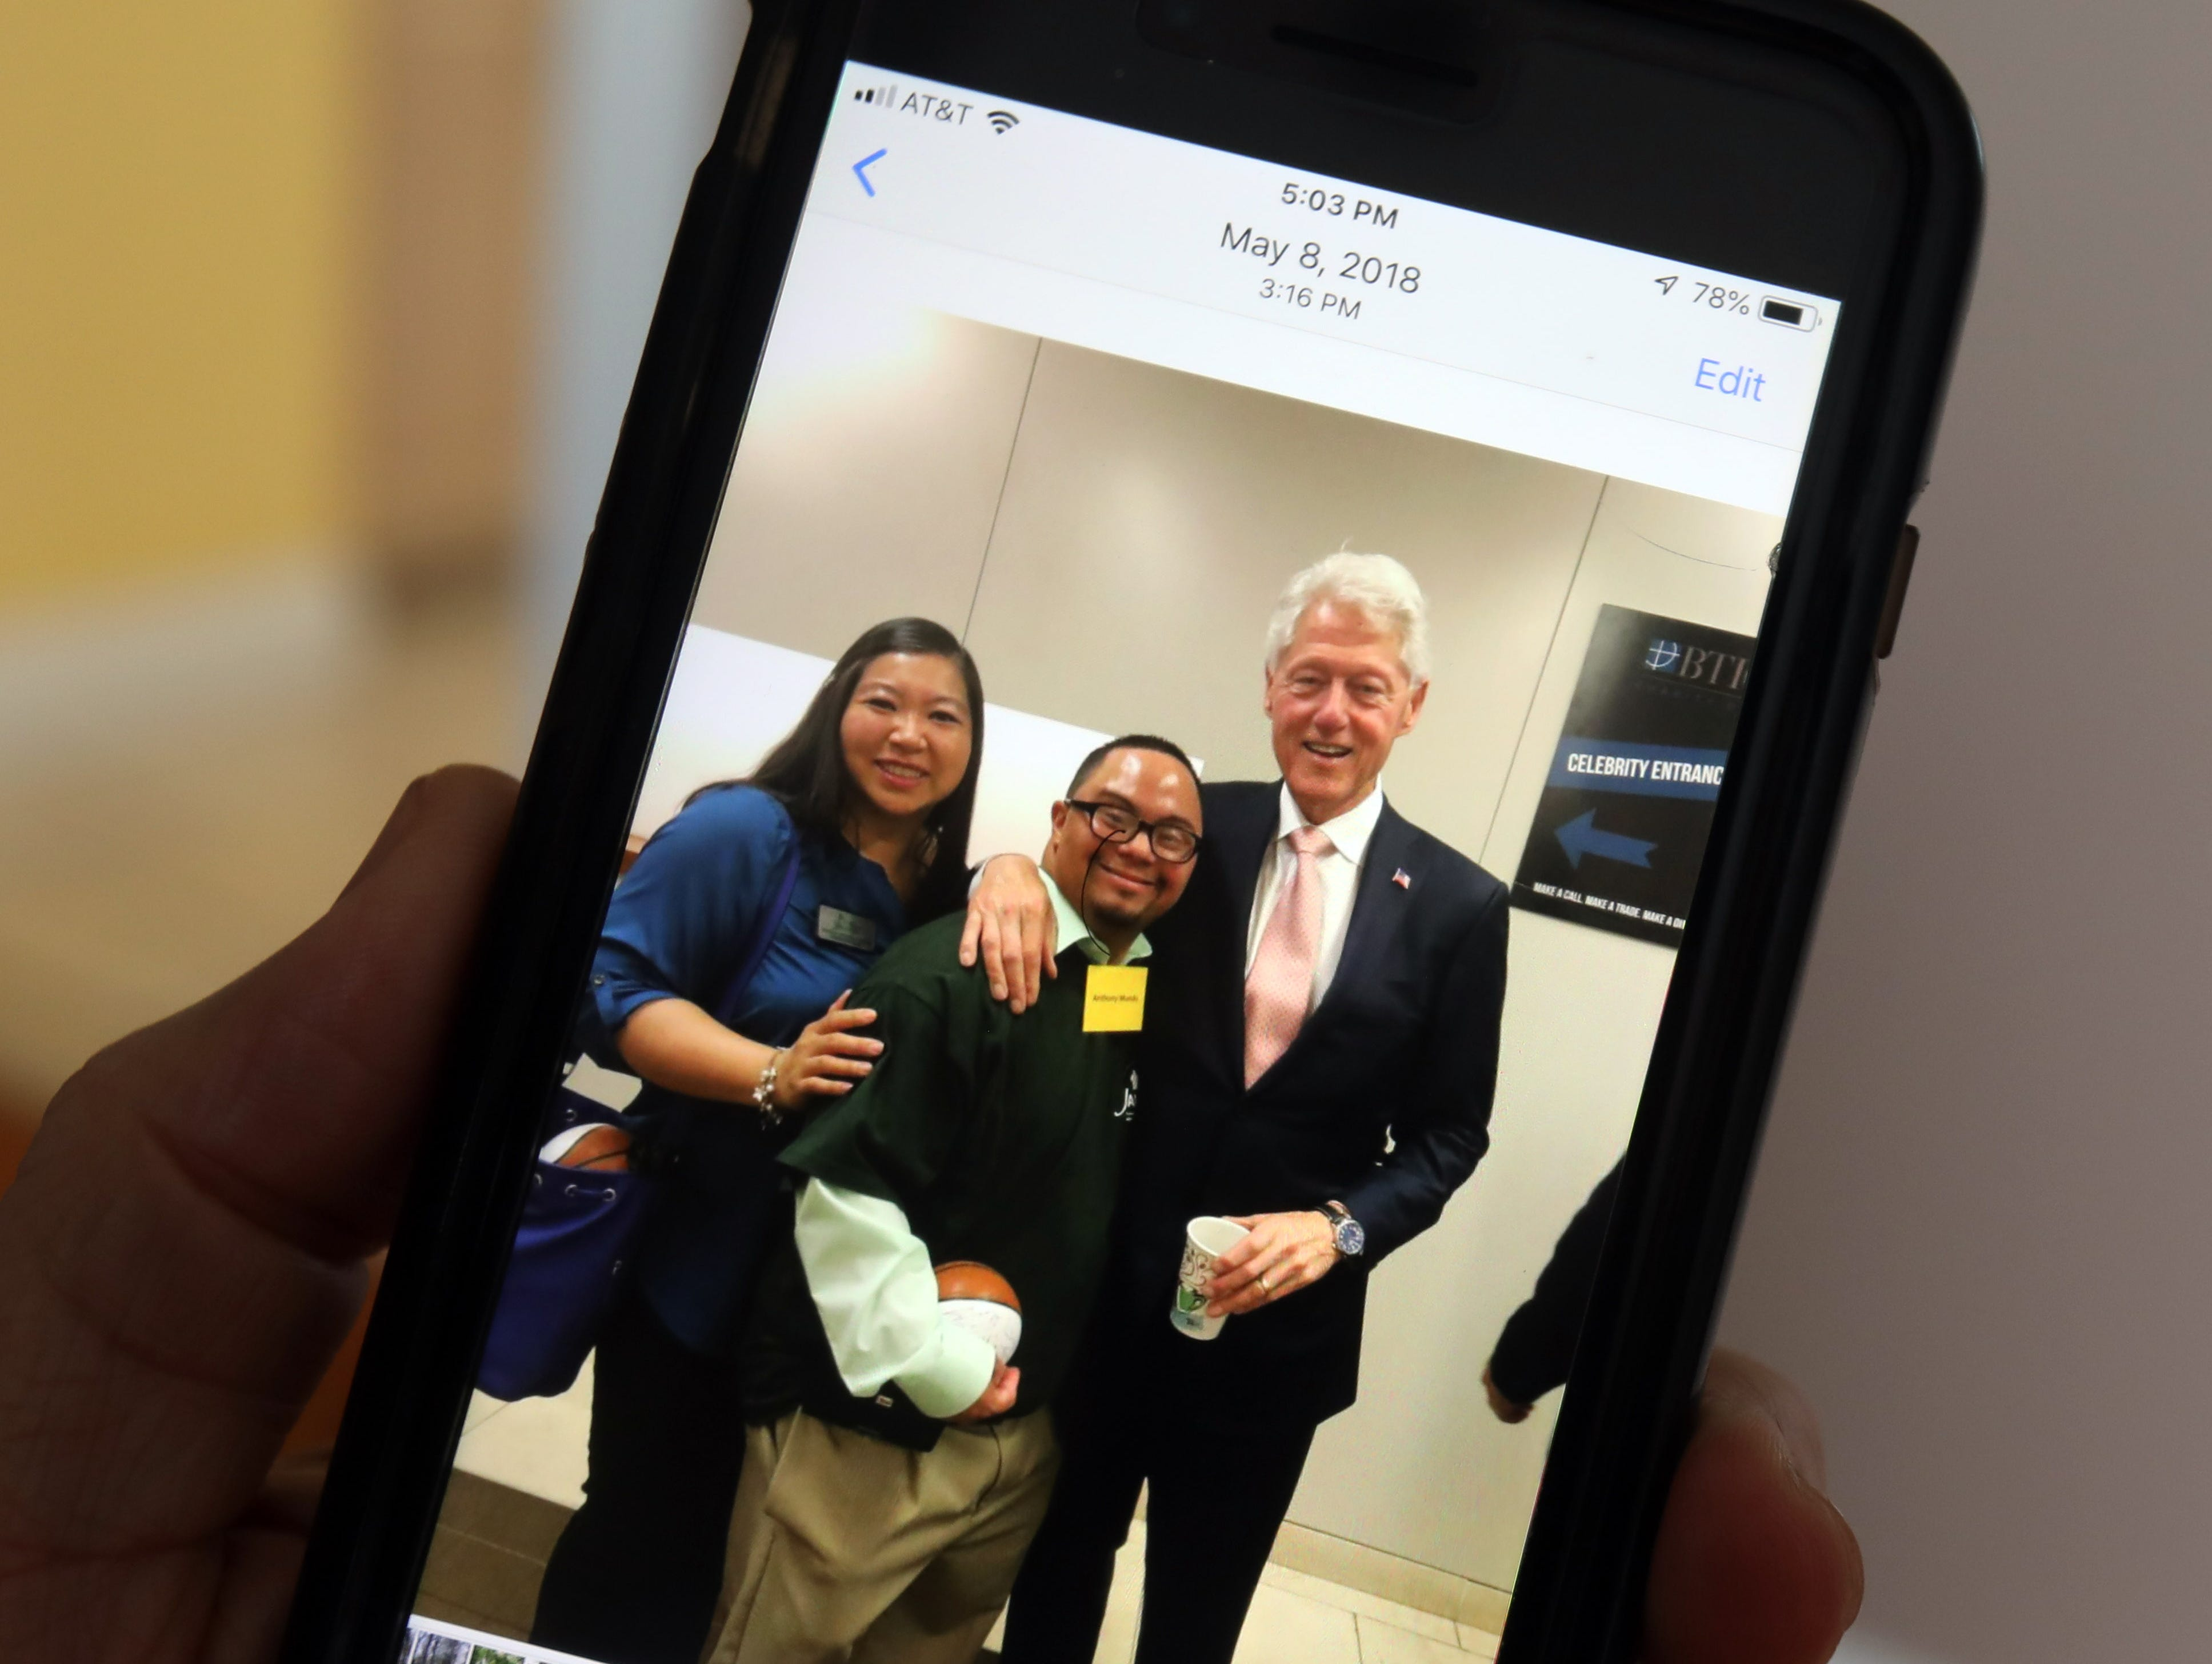 Anthony Mundy, 29 shows a photo he took with former President Bill Clinton during a charity event he attended to bring awareness to programs for adults with disabilities.